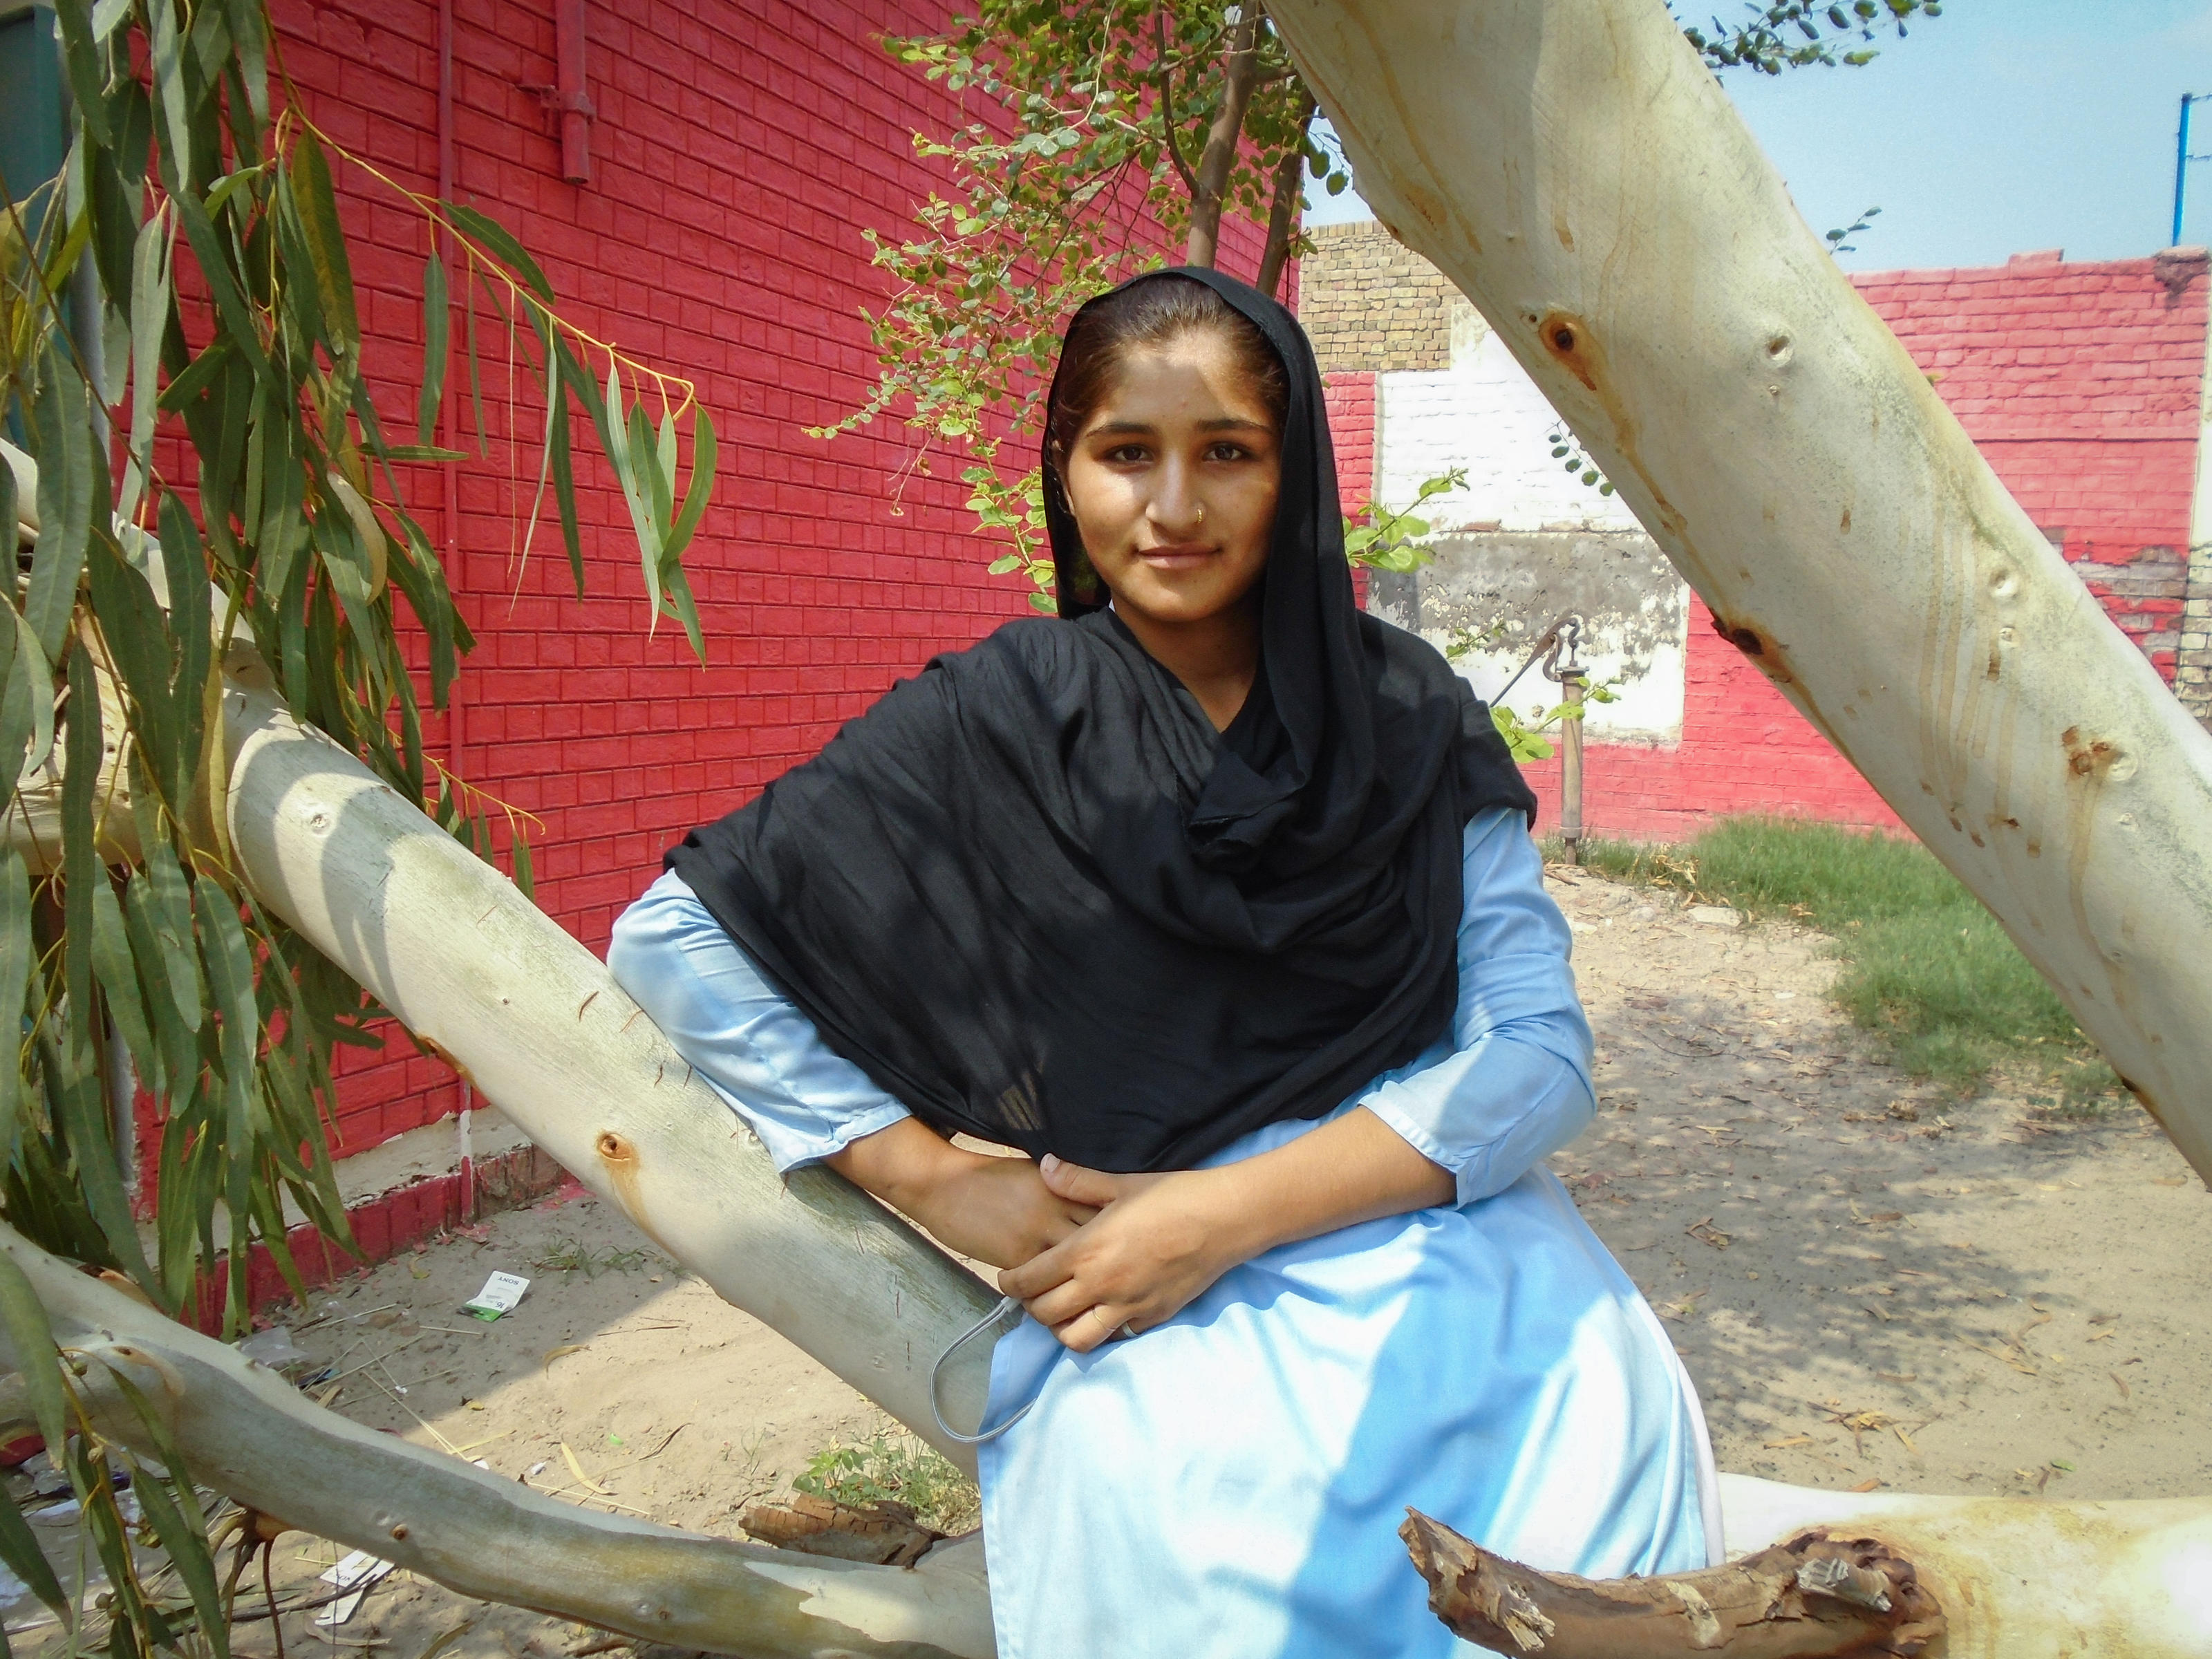 A photo of Sonia at school, taken by Rimsha in Pakistan, 2017.